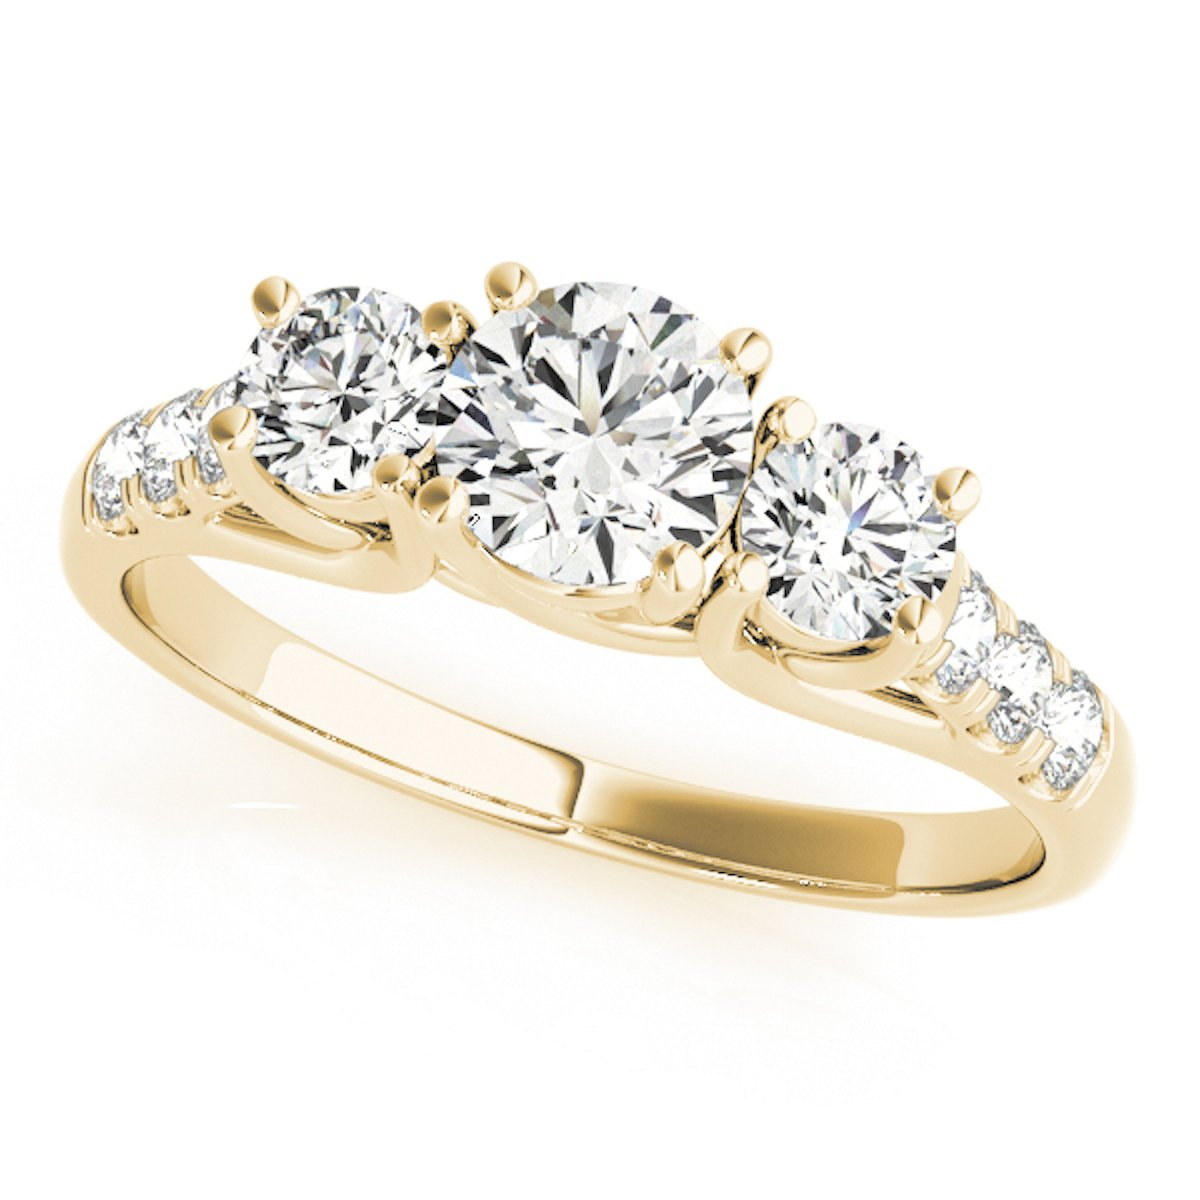 MauliJewels 1/2 Carat Engagement Ring Crafted In 14k Solid Yellow Gold by MauliJewels